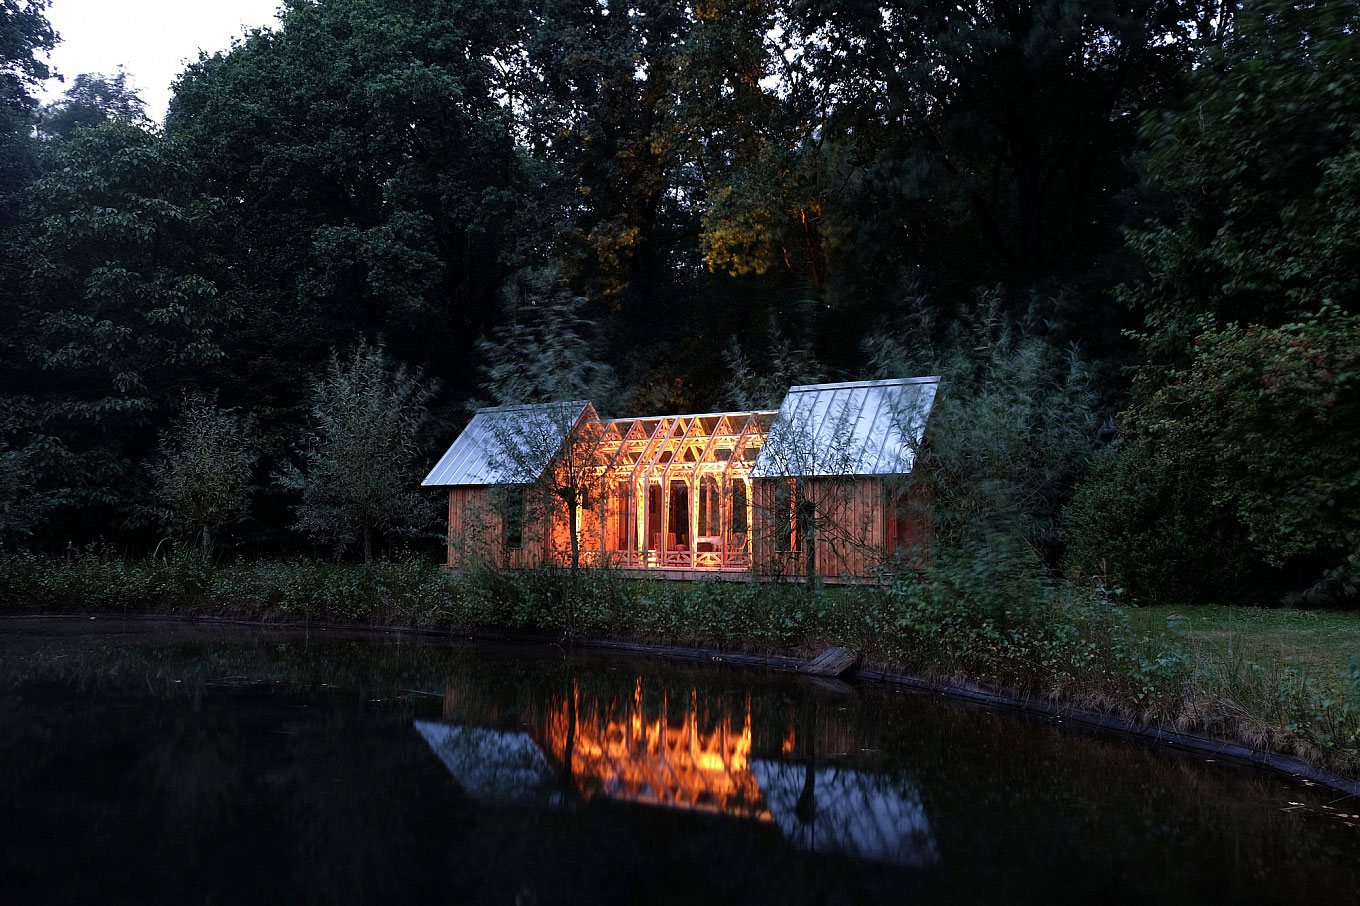 Ingenious Wooden Shed Full of Surprises in the Outskirts of Eindhoven